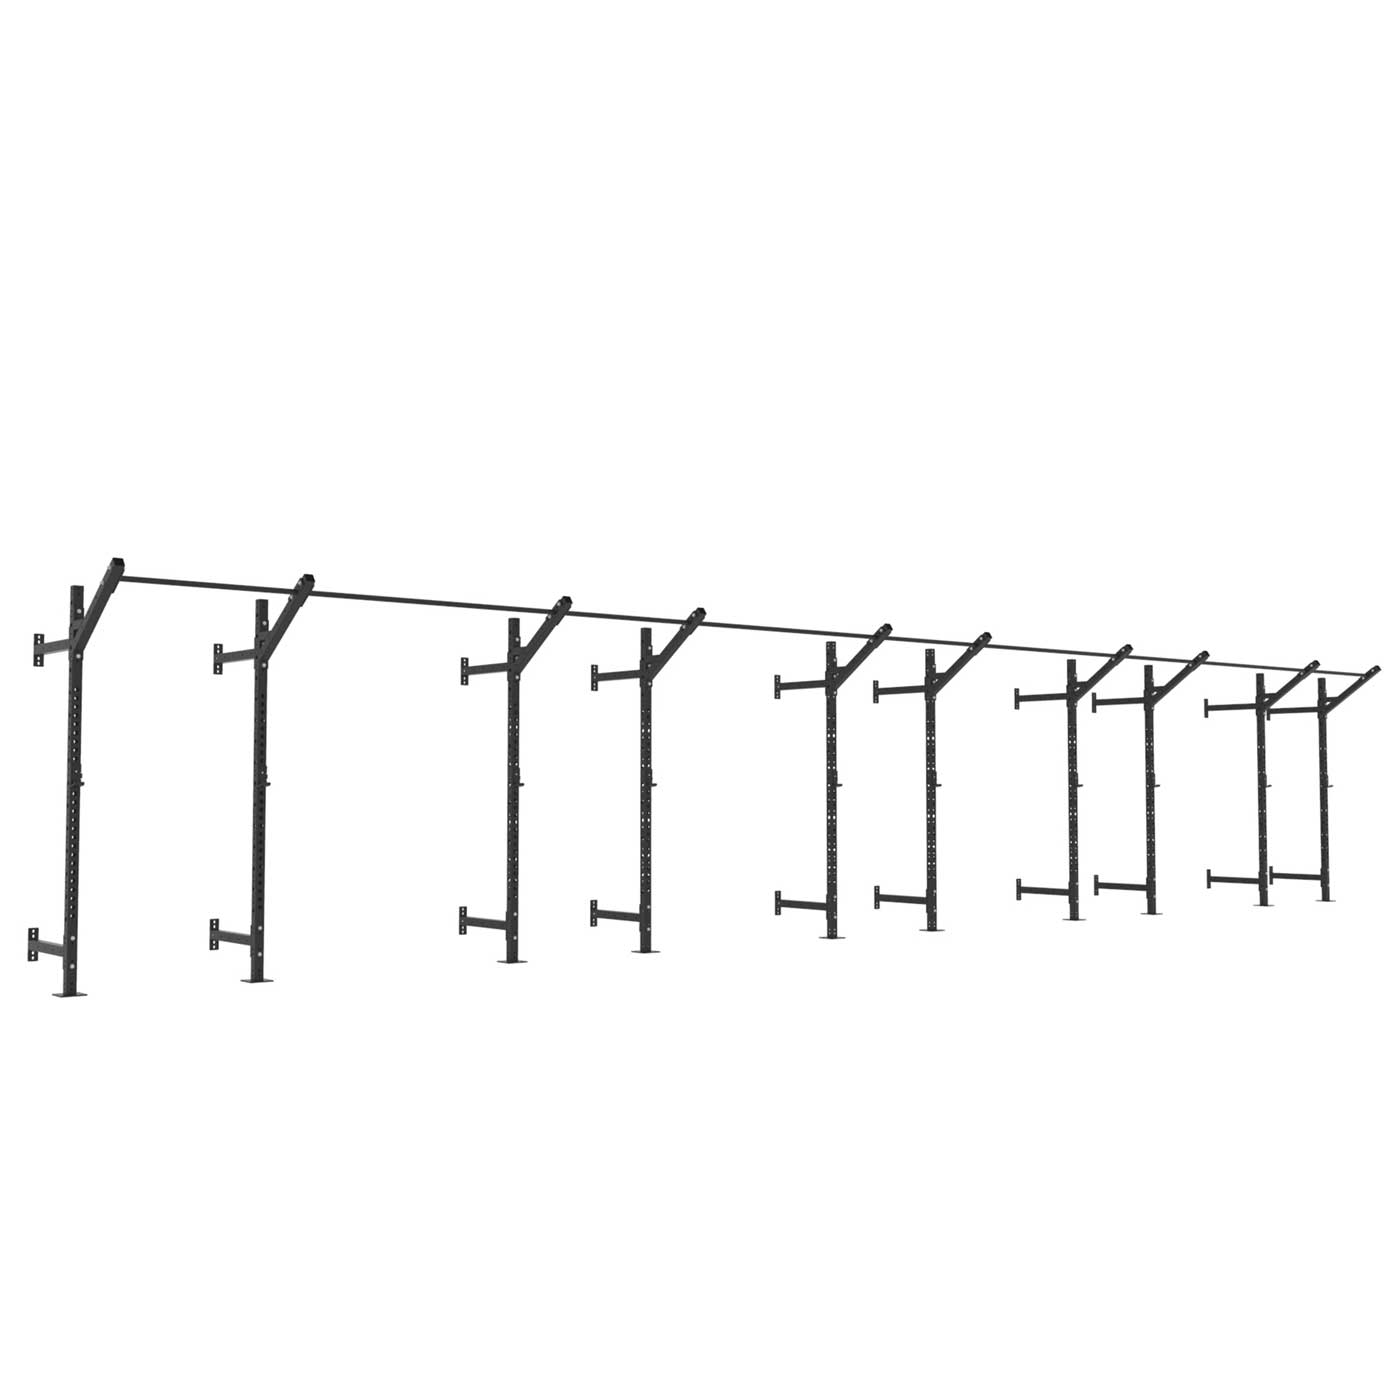 44ft XSR Wall Mounted Pull-up Rig